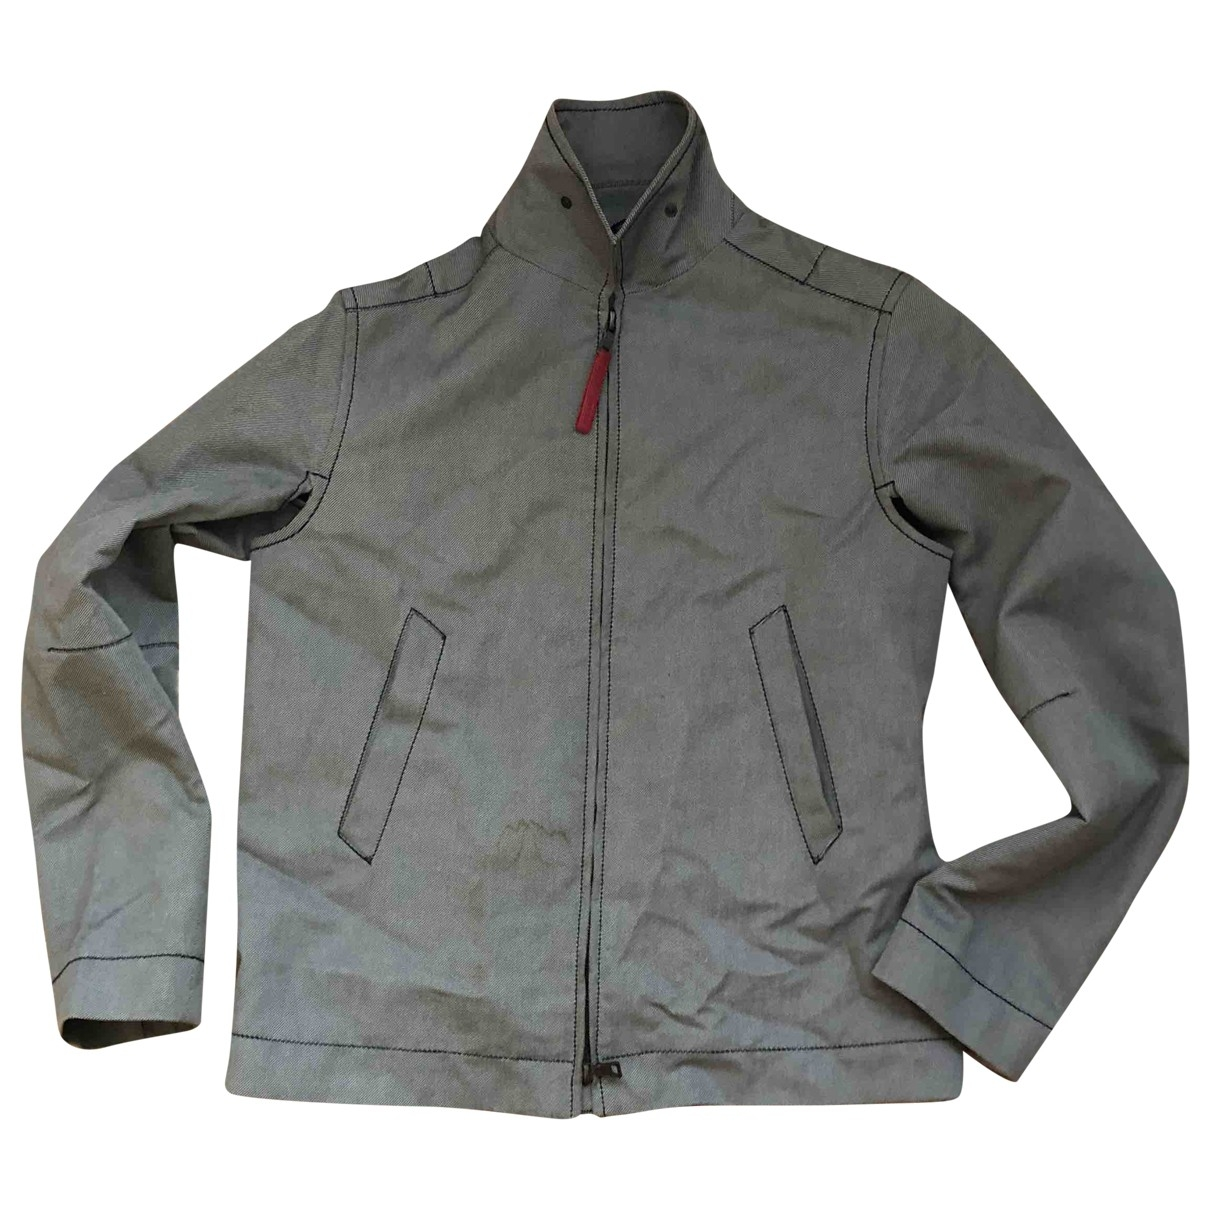 Prada \N Grey Cotton jacket for Women 42 IT